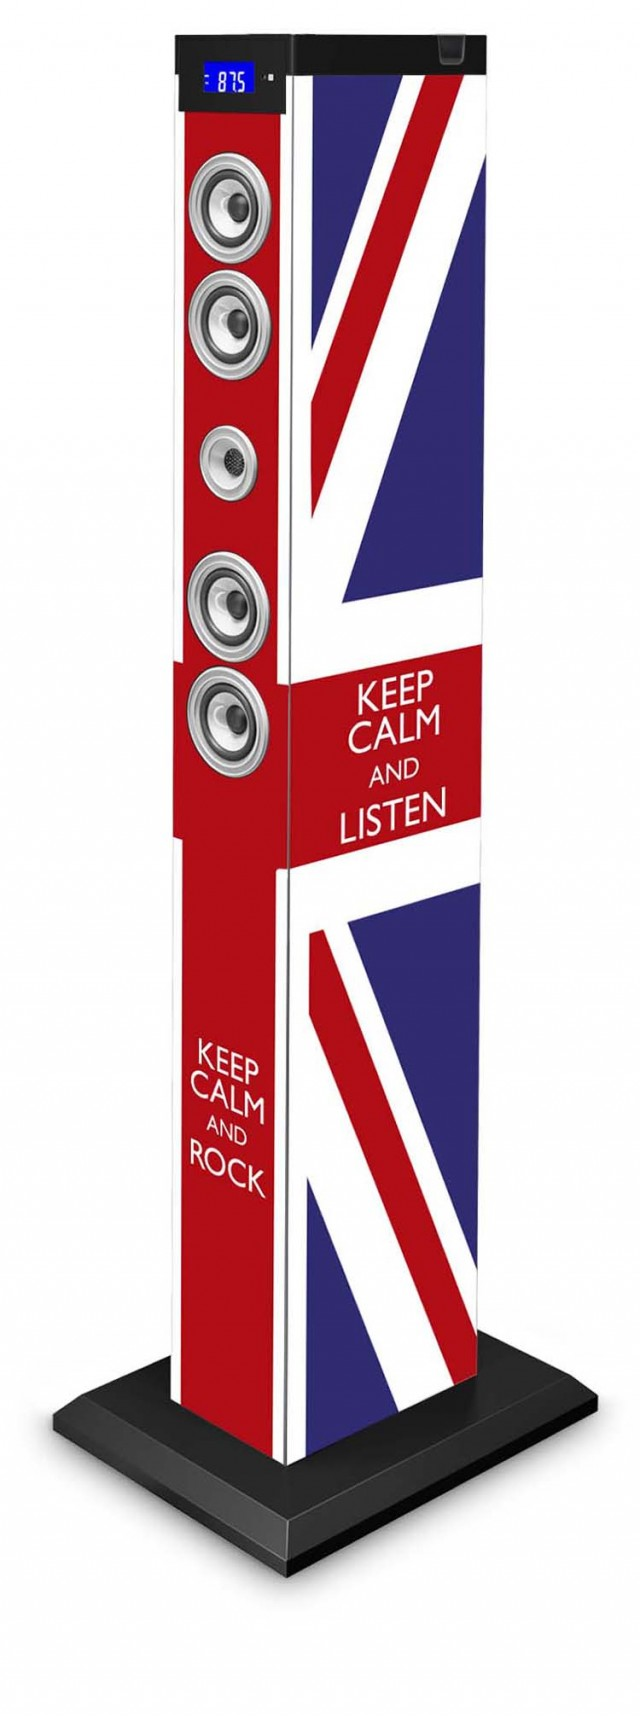 Multimedia Tower Keep Calm (UK) - Packshot